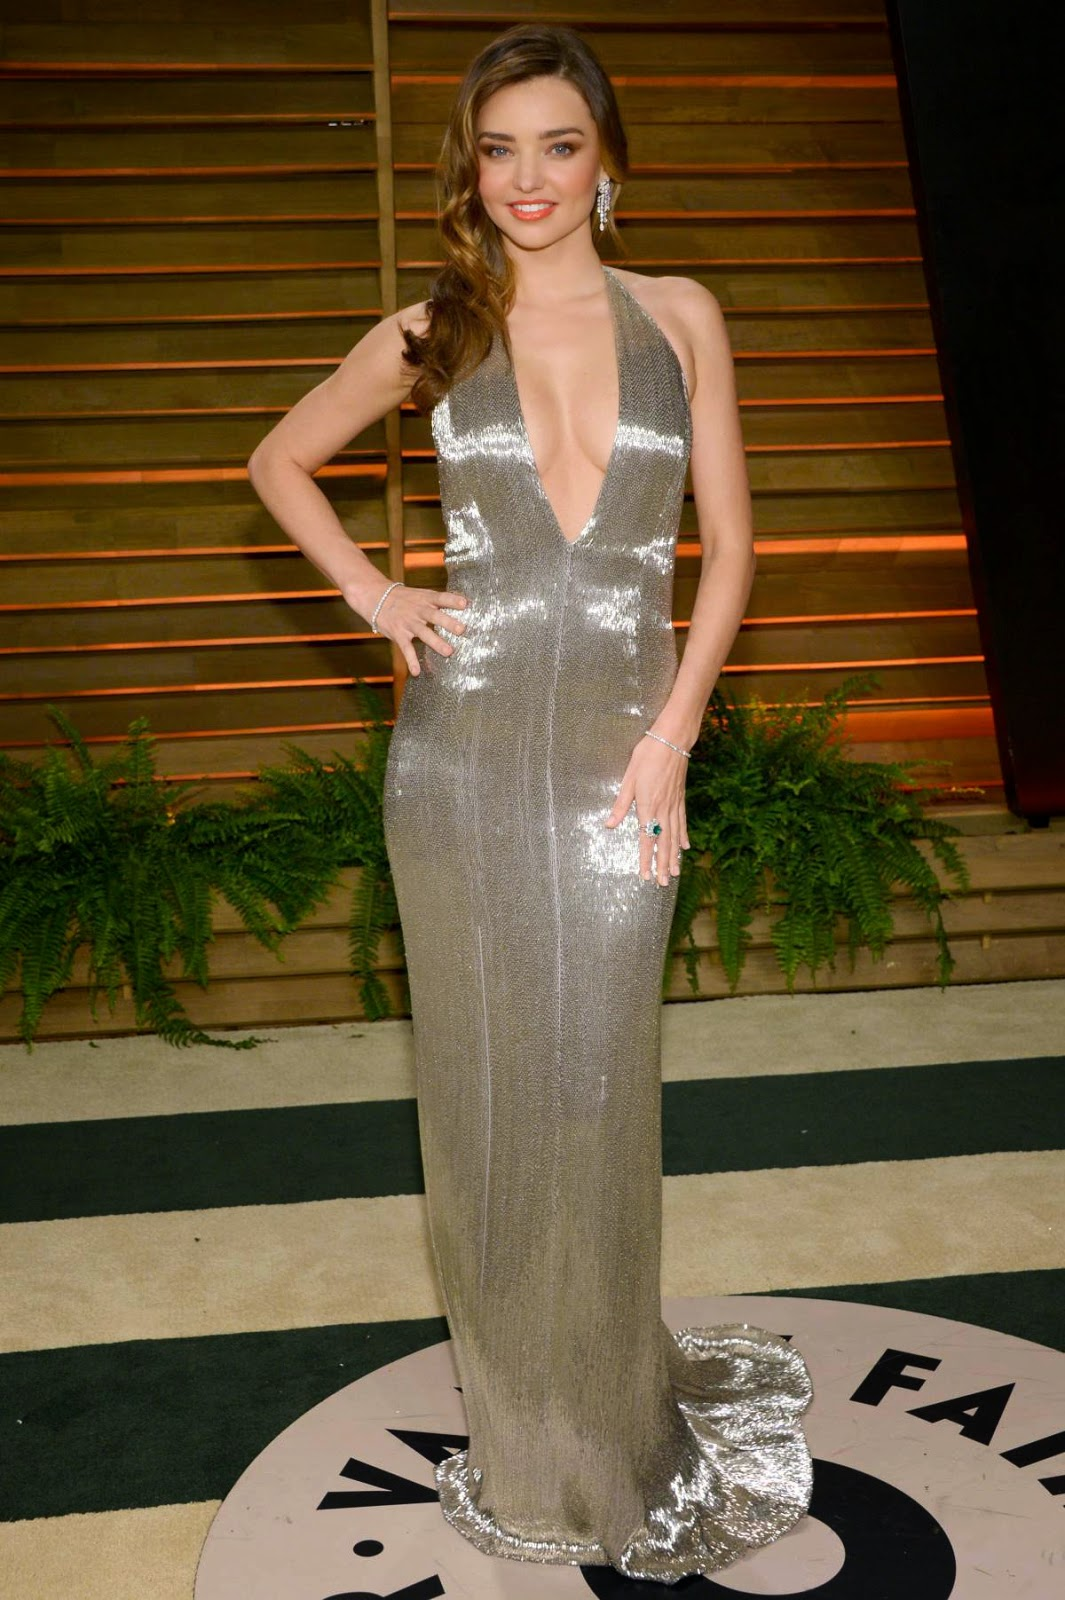 Miranda Kerr - Vanity Fair Oscars Party in West Hollywood Photos 2014